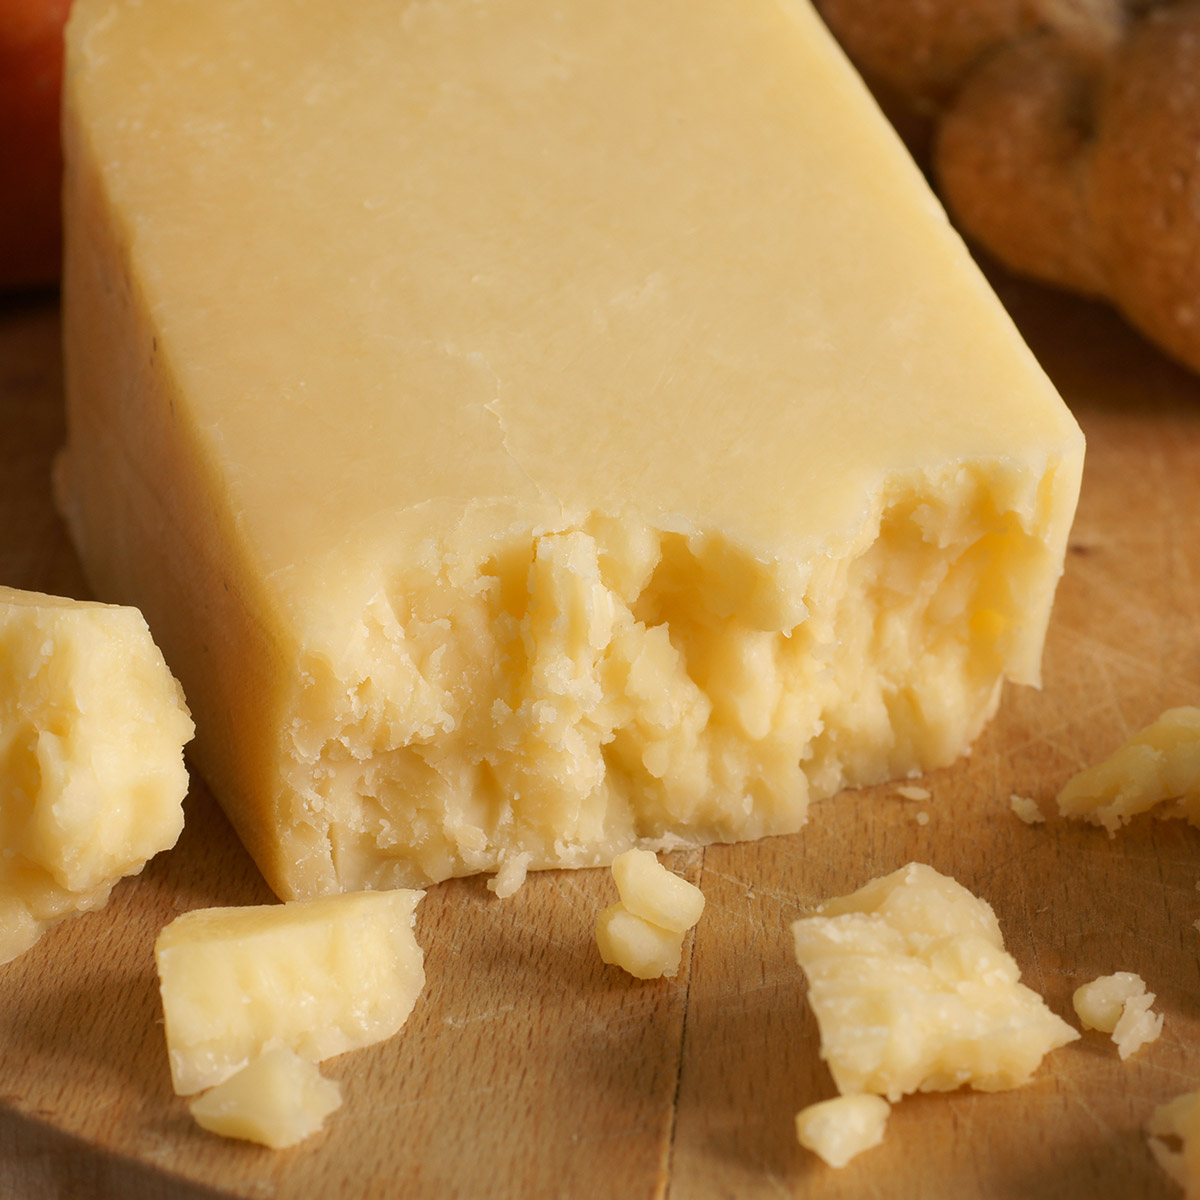 Baronne Food suggestion - Mature Cheese